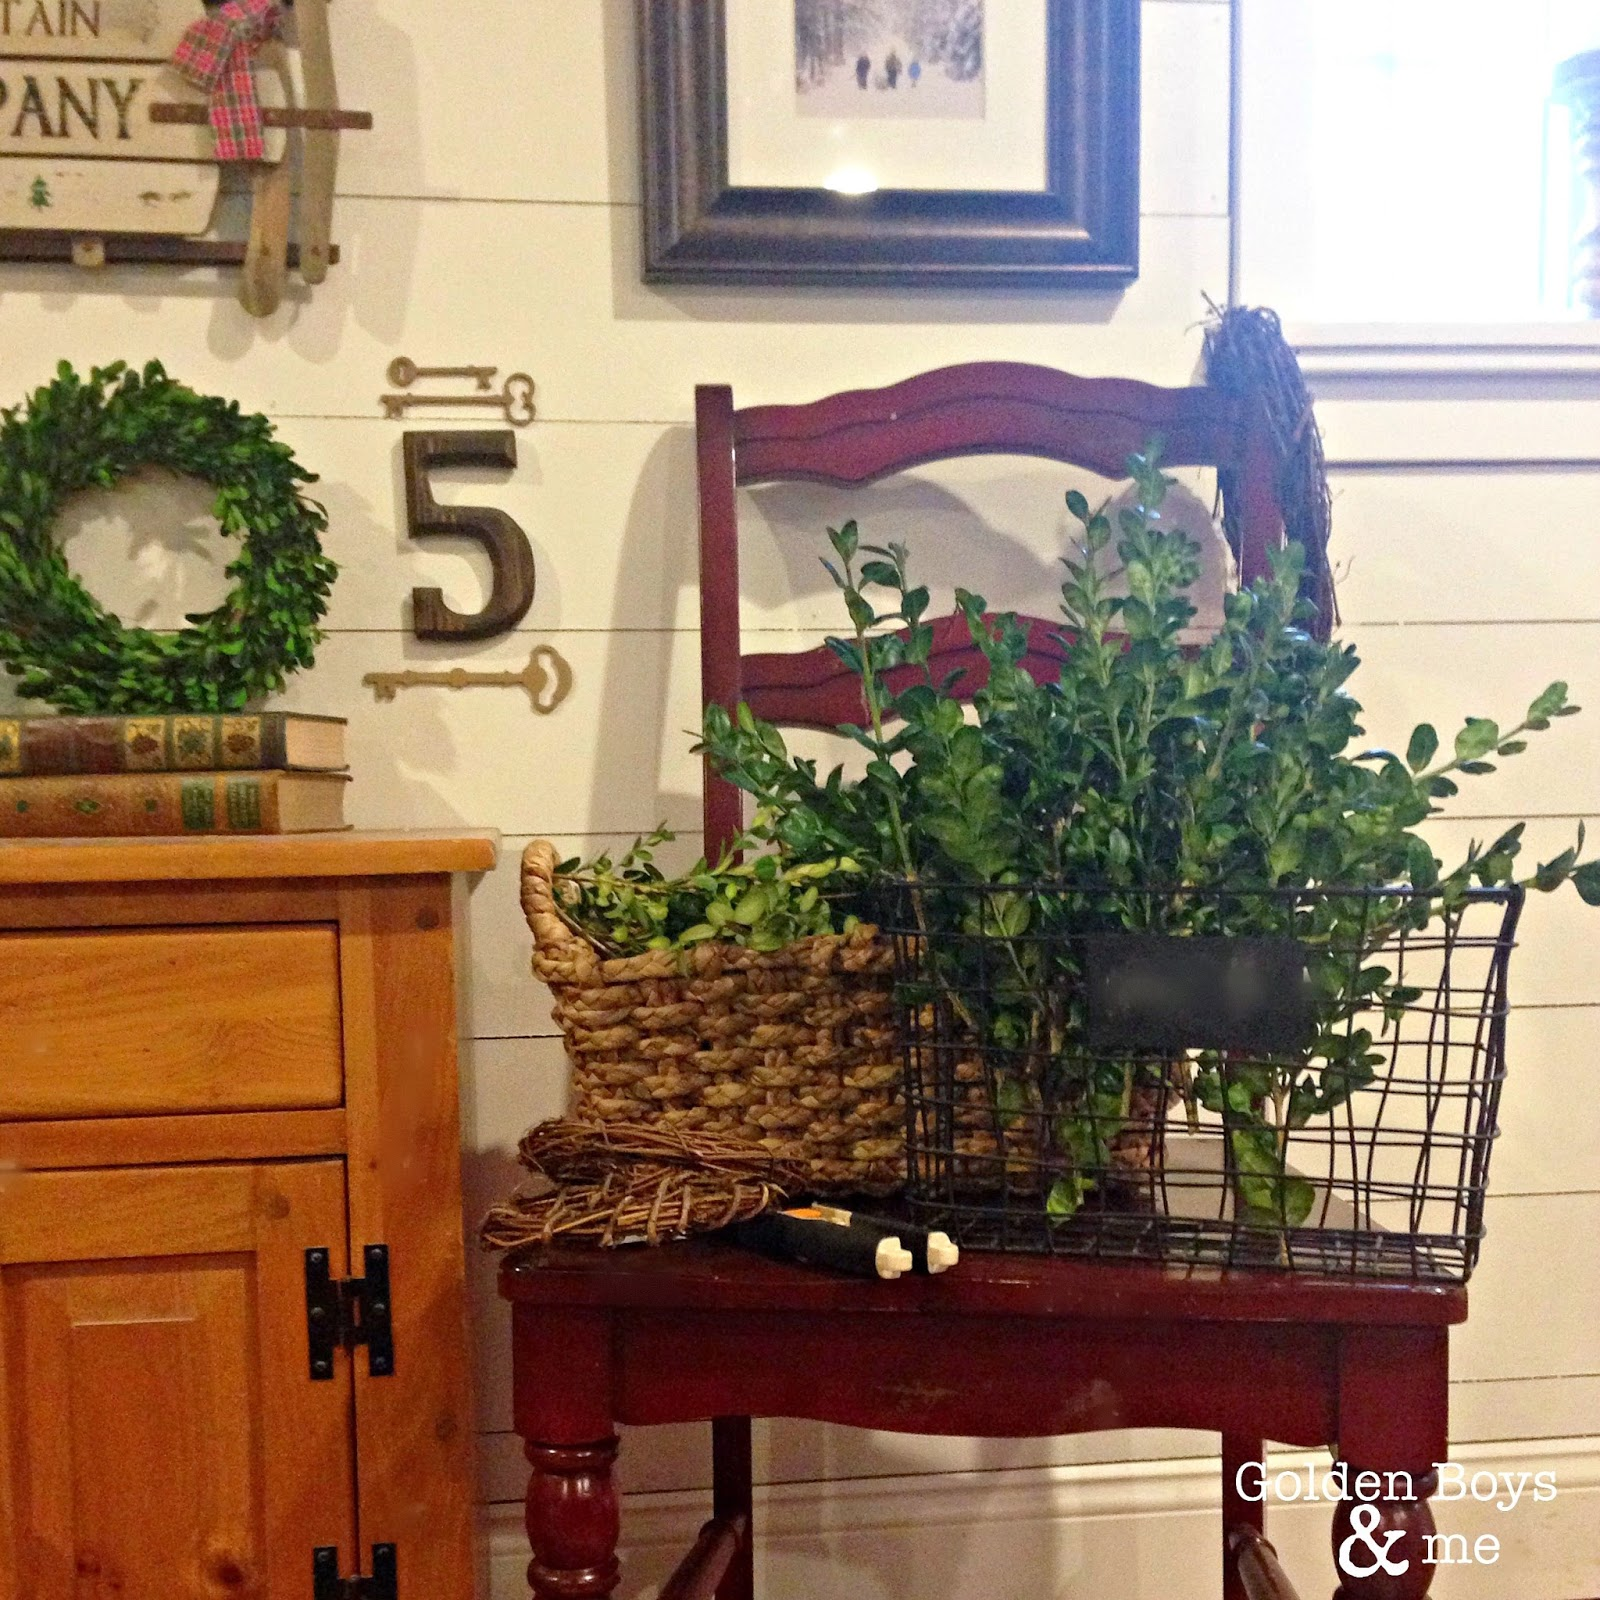 Boxwood clippings on red chair with plank wall-www.goldenboysandme.com